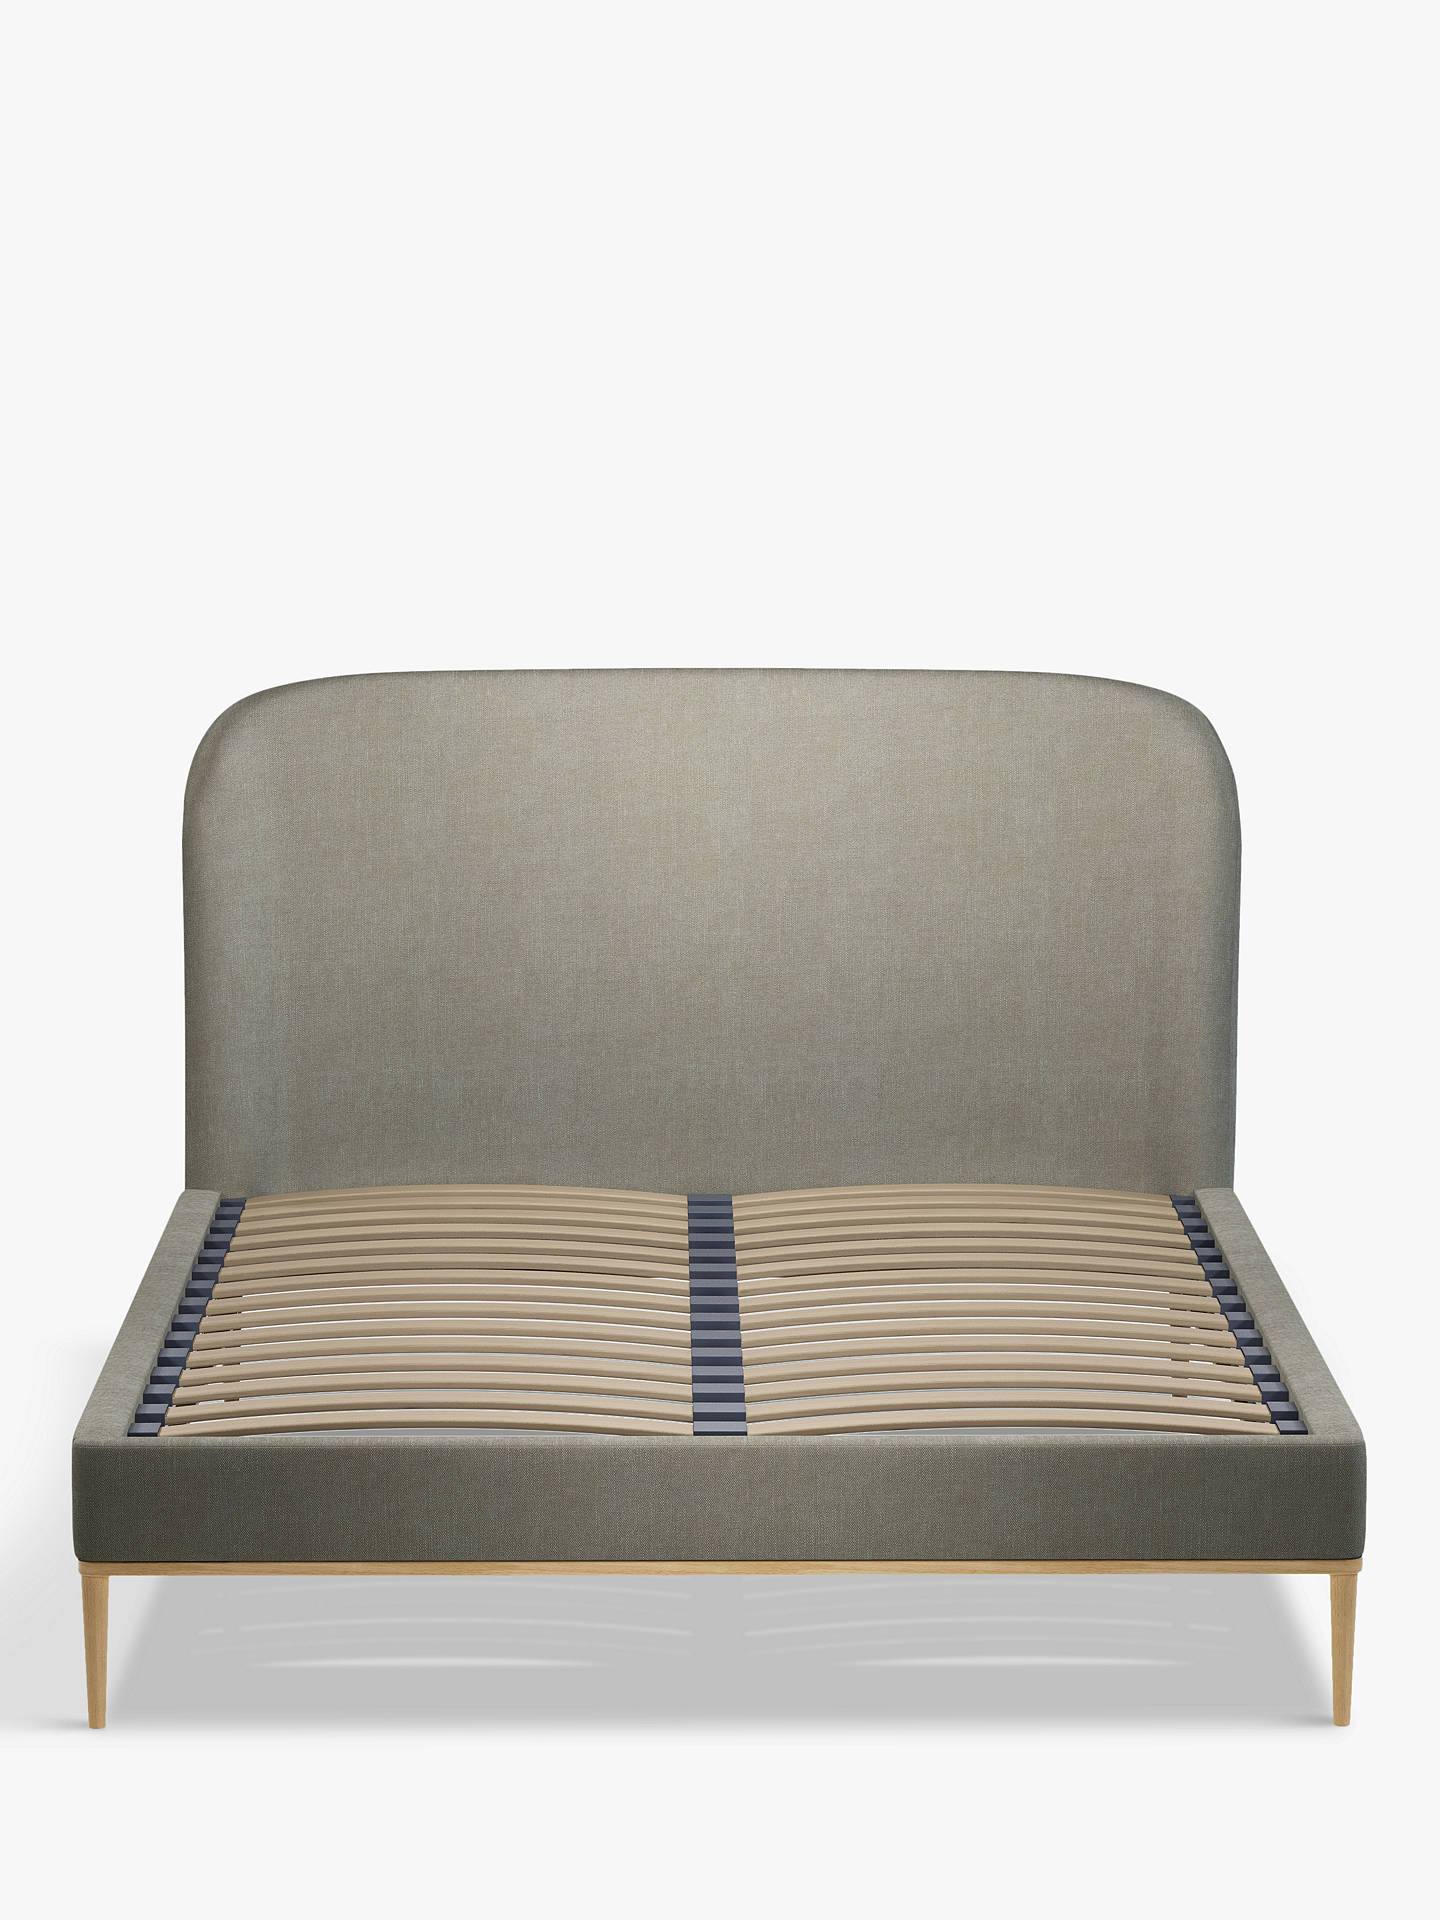 Buy John Lewis & Partners Show-Wood Upholstered Bed Frame, Double, Erin Grey Online at johnlewis.com